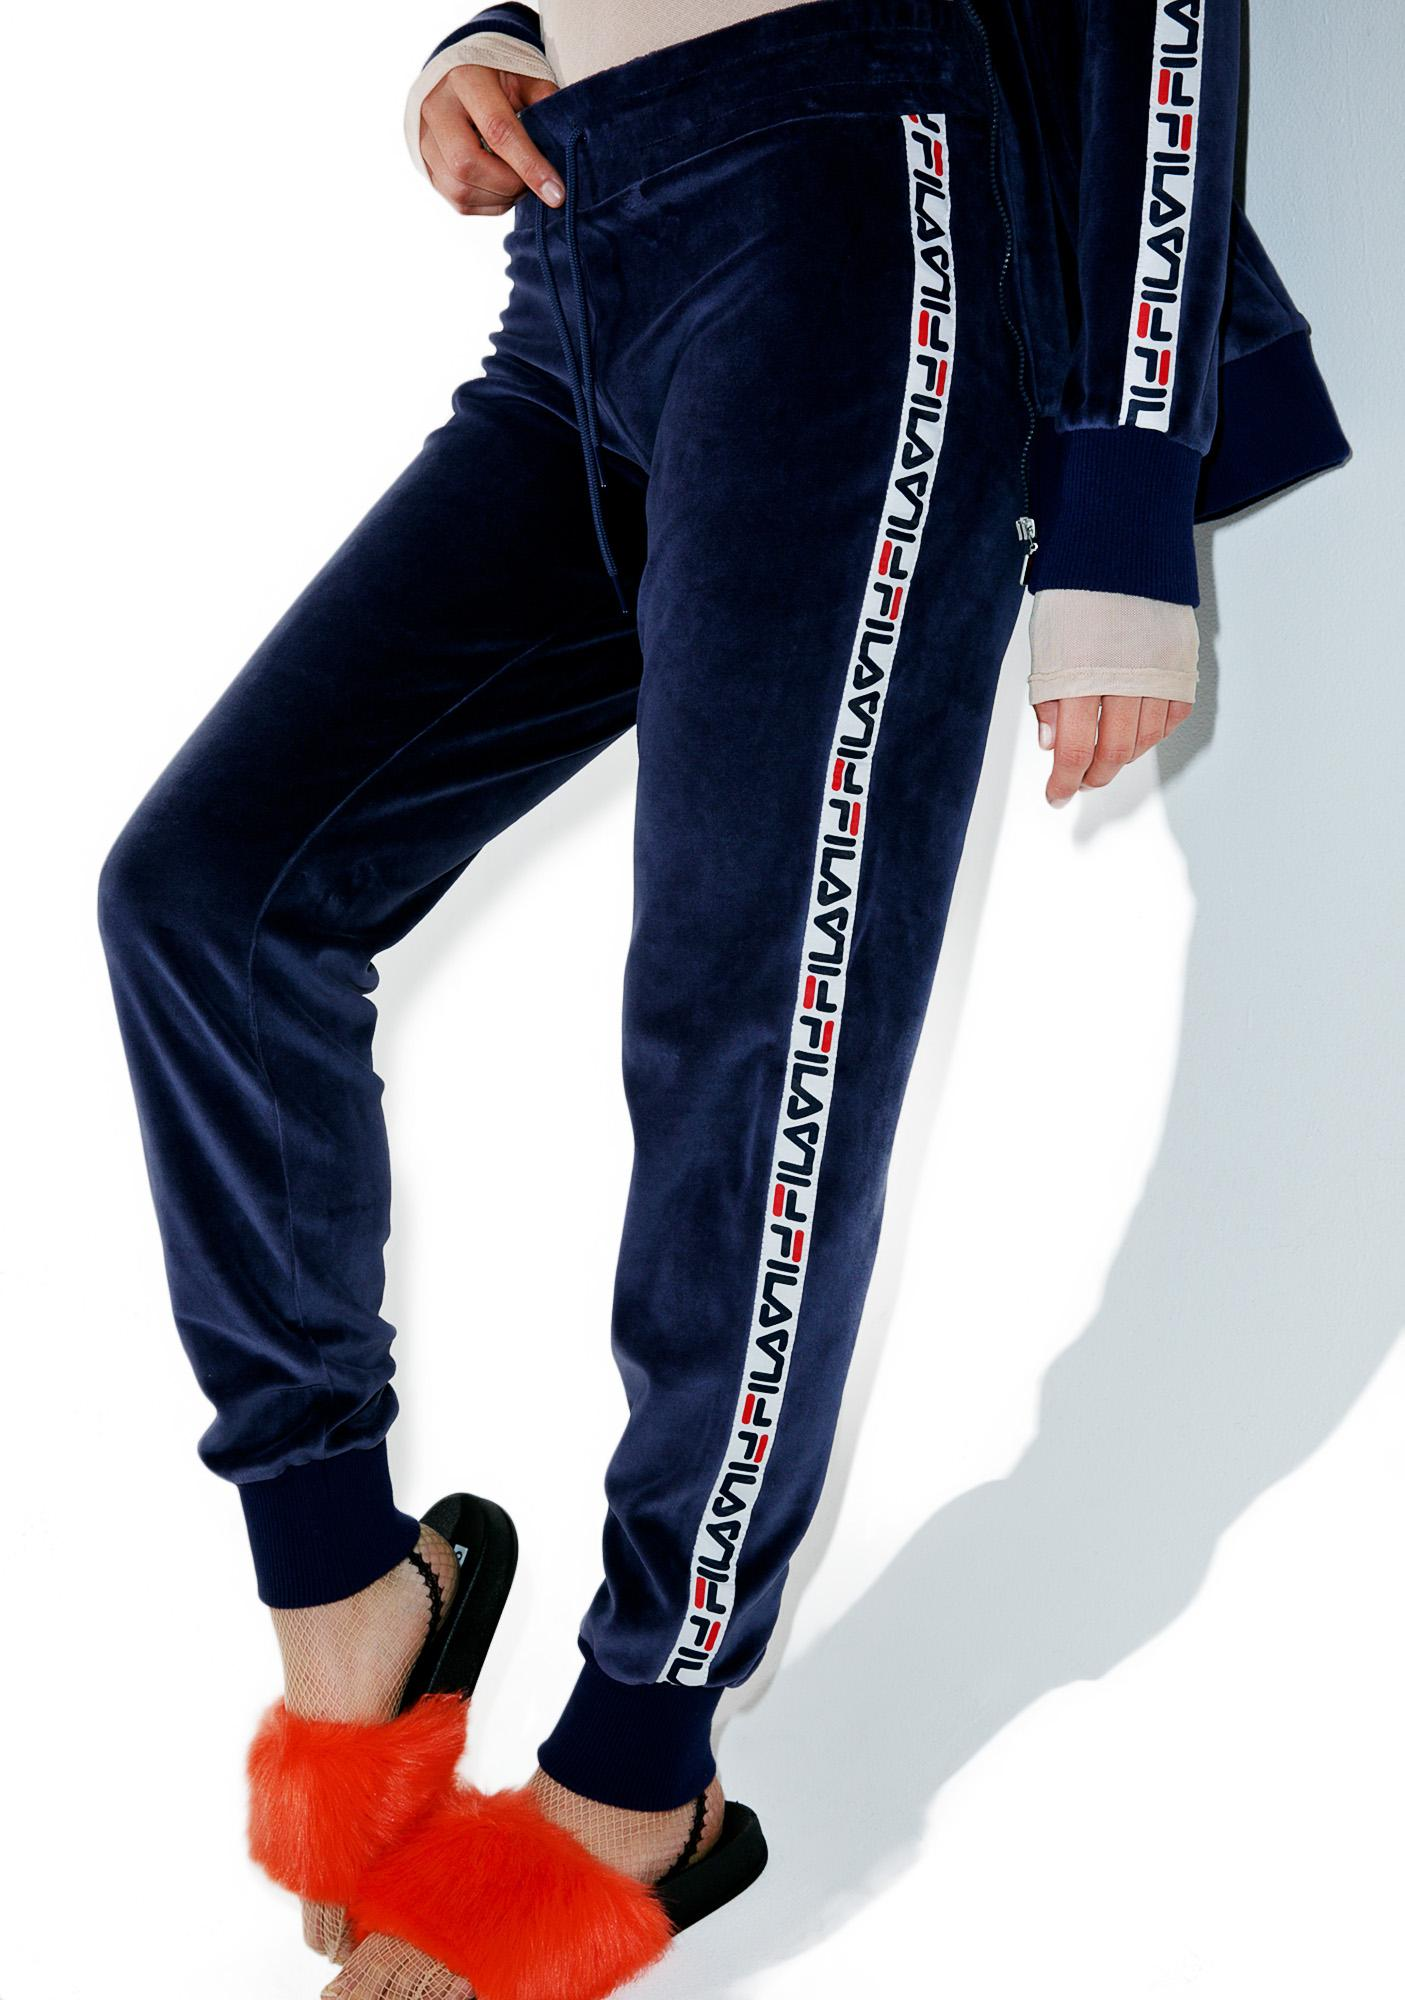 fila velour jogging suits